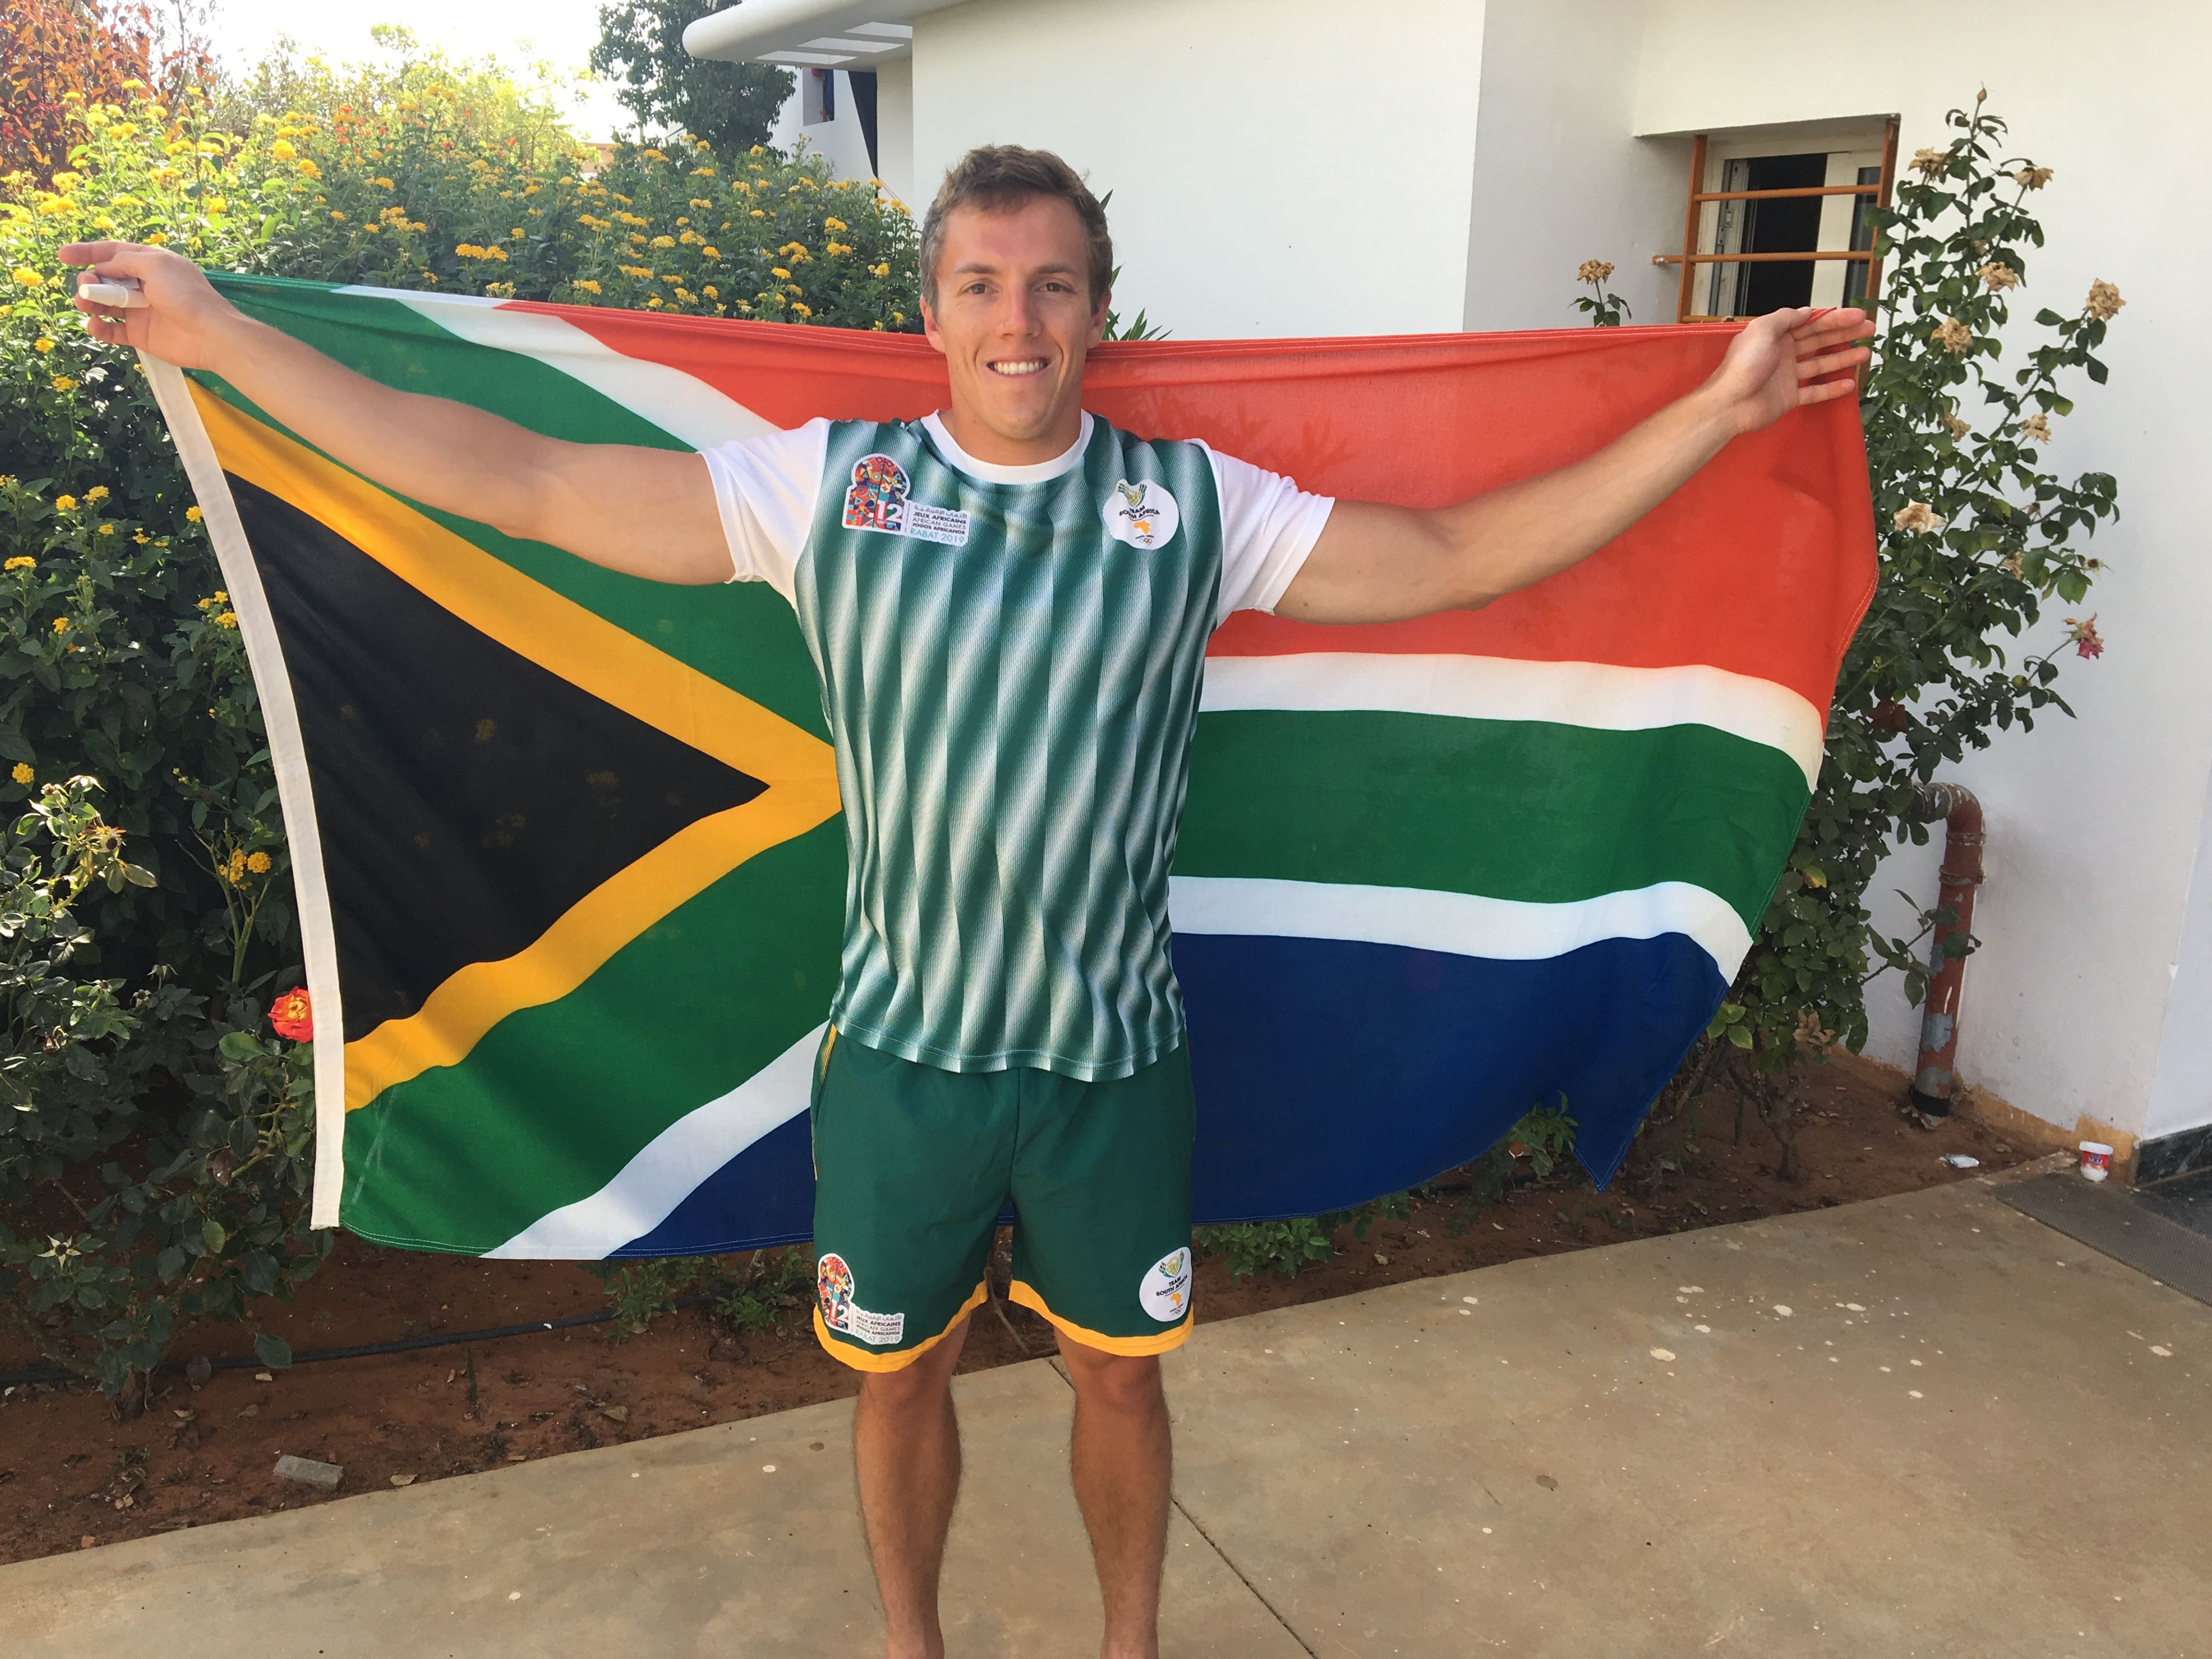 Coetzee takes gold and aims at Tokyo